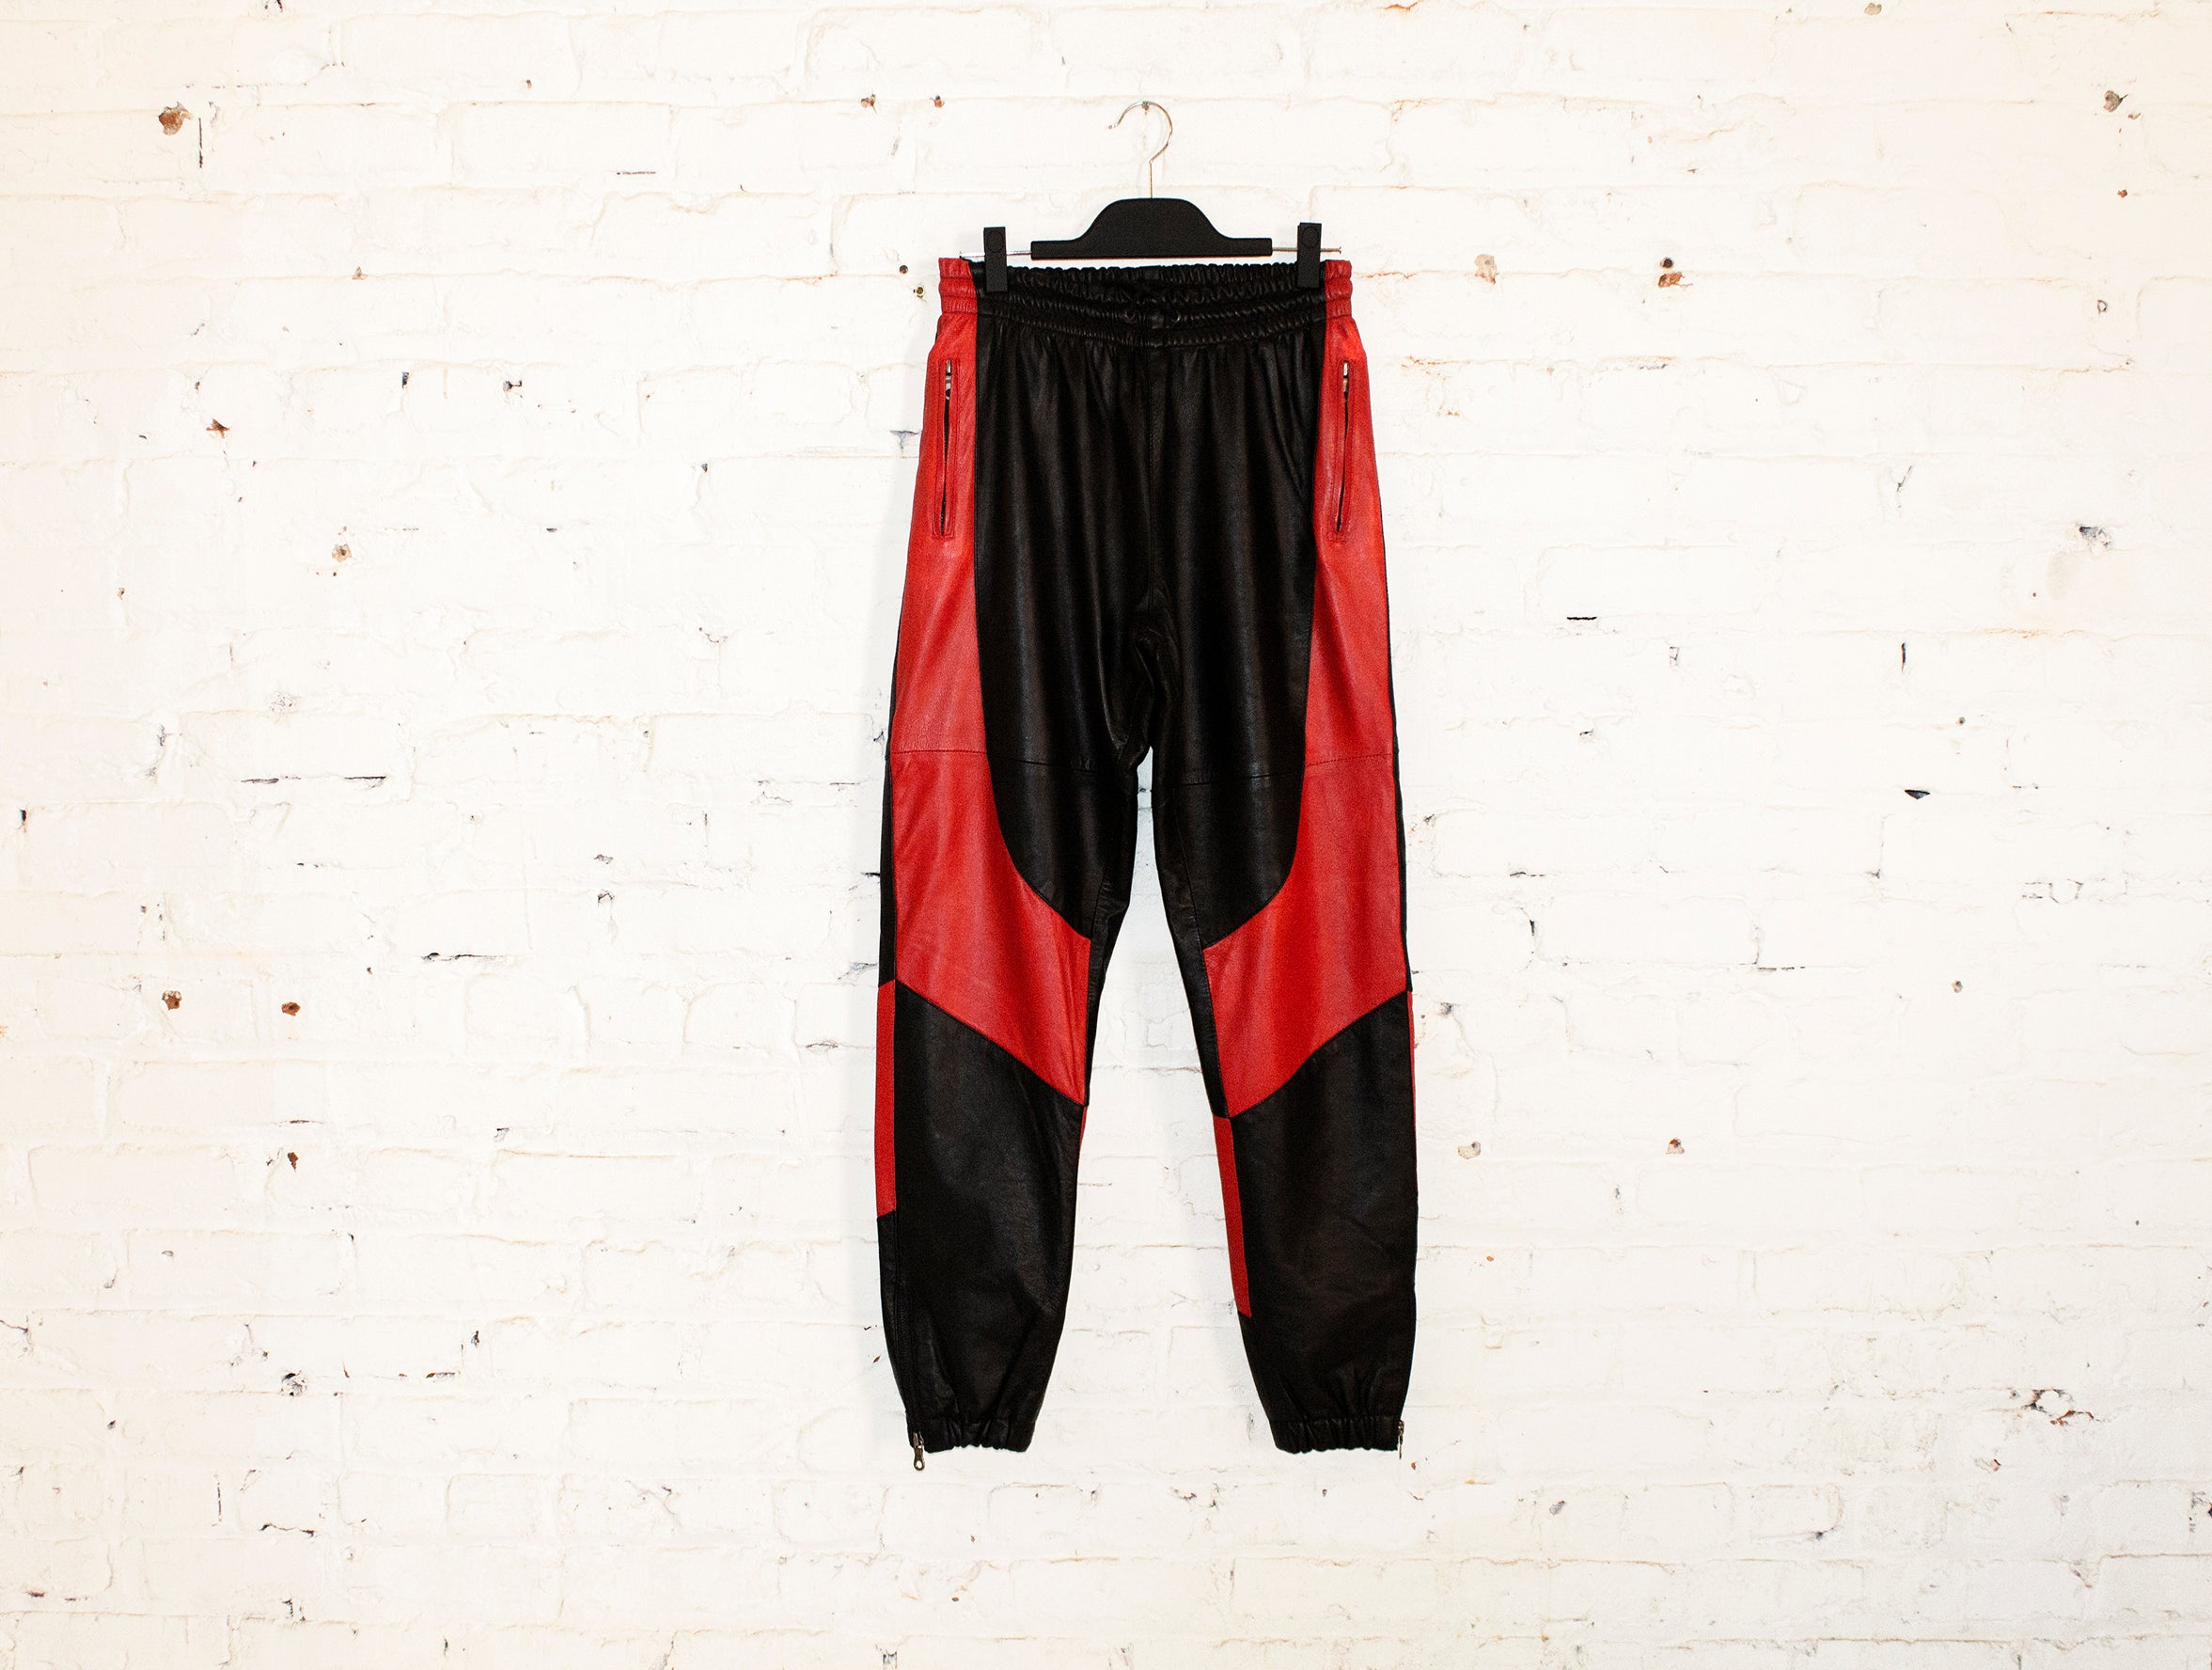 H E I R S 'SkyDweller' Leather Legacy Track Pants (Bred)